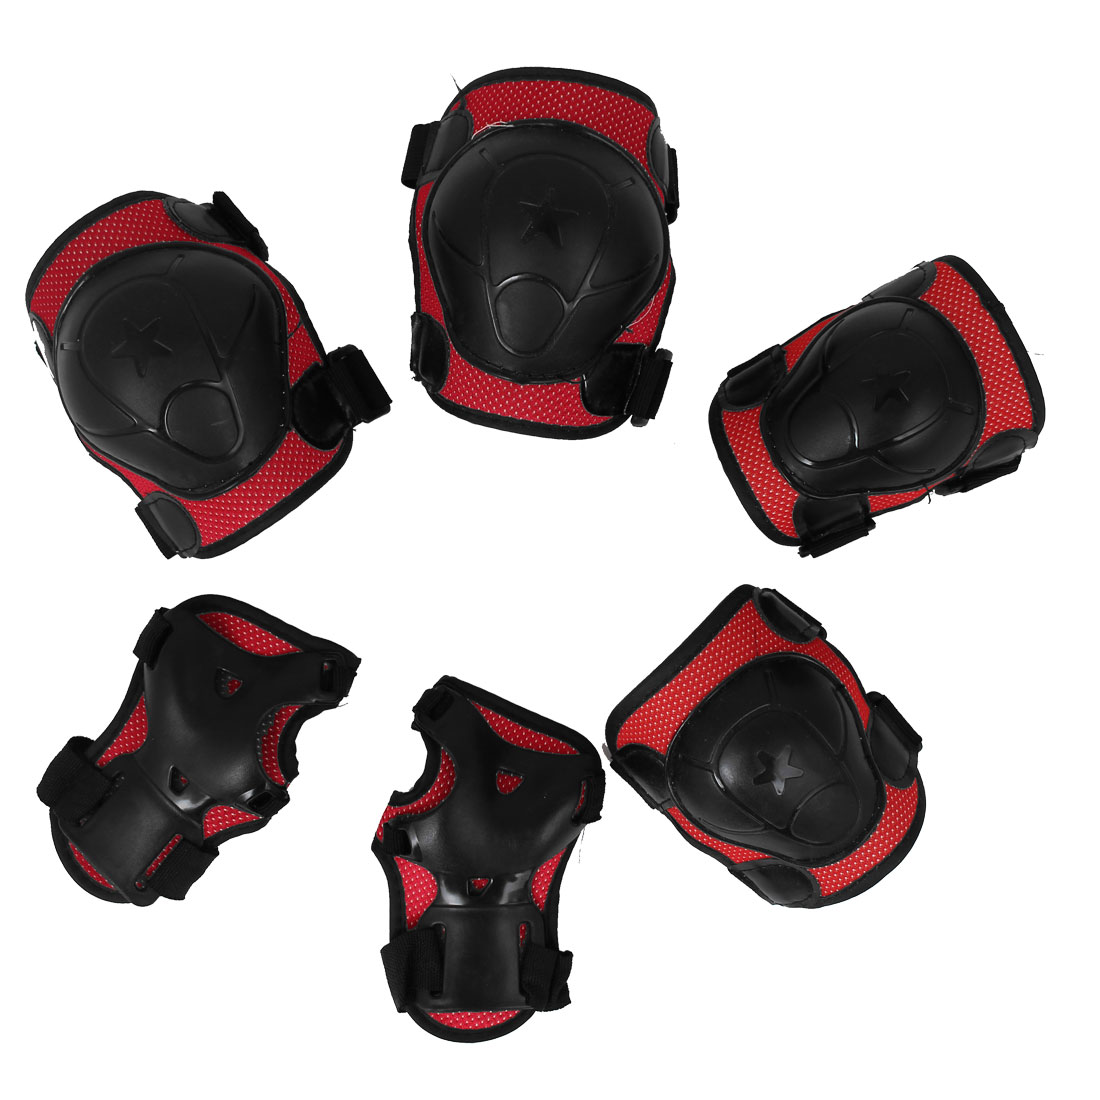 Skating Sports Knee Elbow Wrist Palm Protector Pads Safety Guard Set 6 in 1